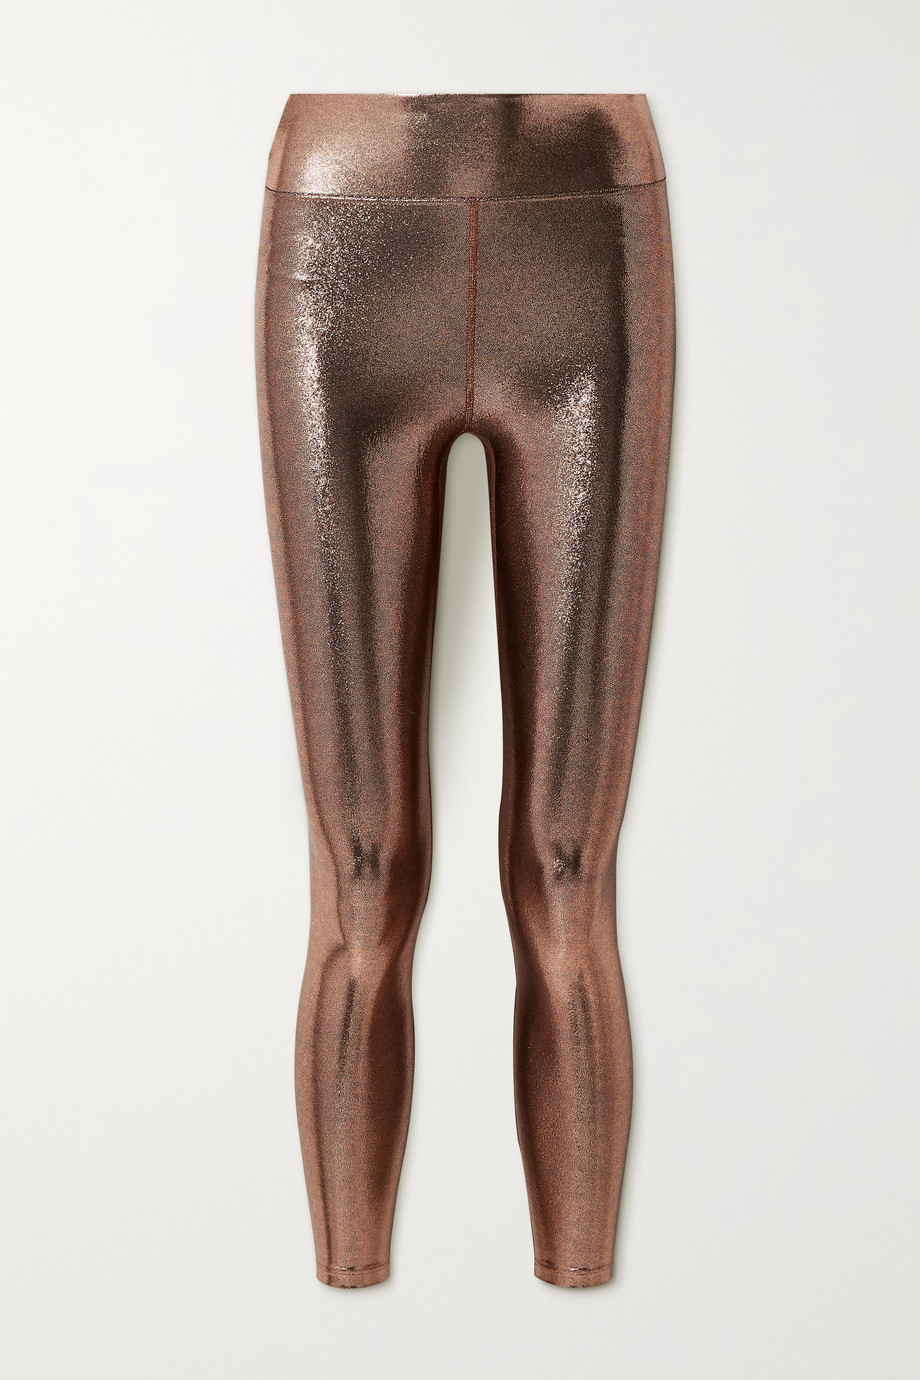 HEROINE SPORT Marvel metallic stretch leggings